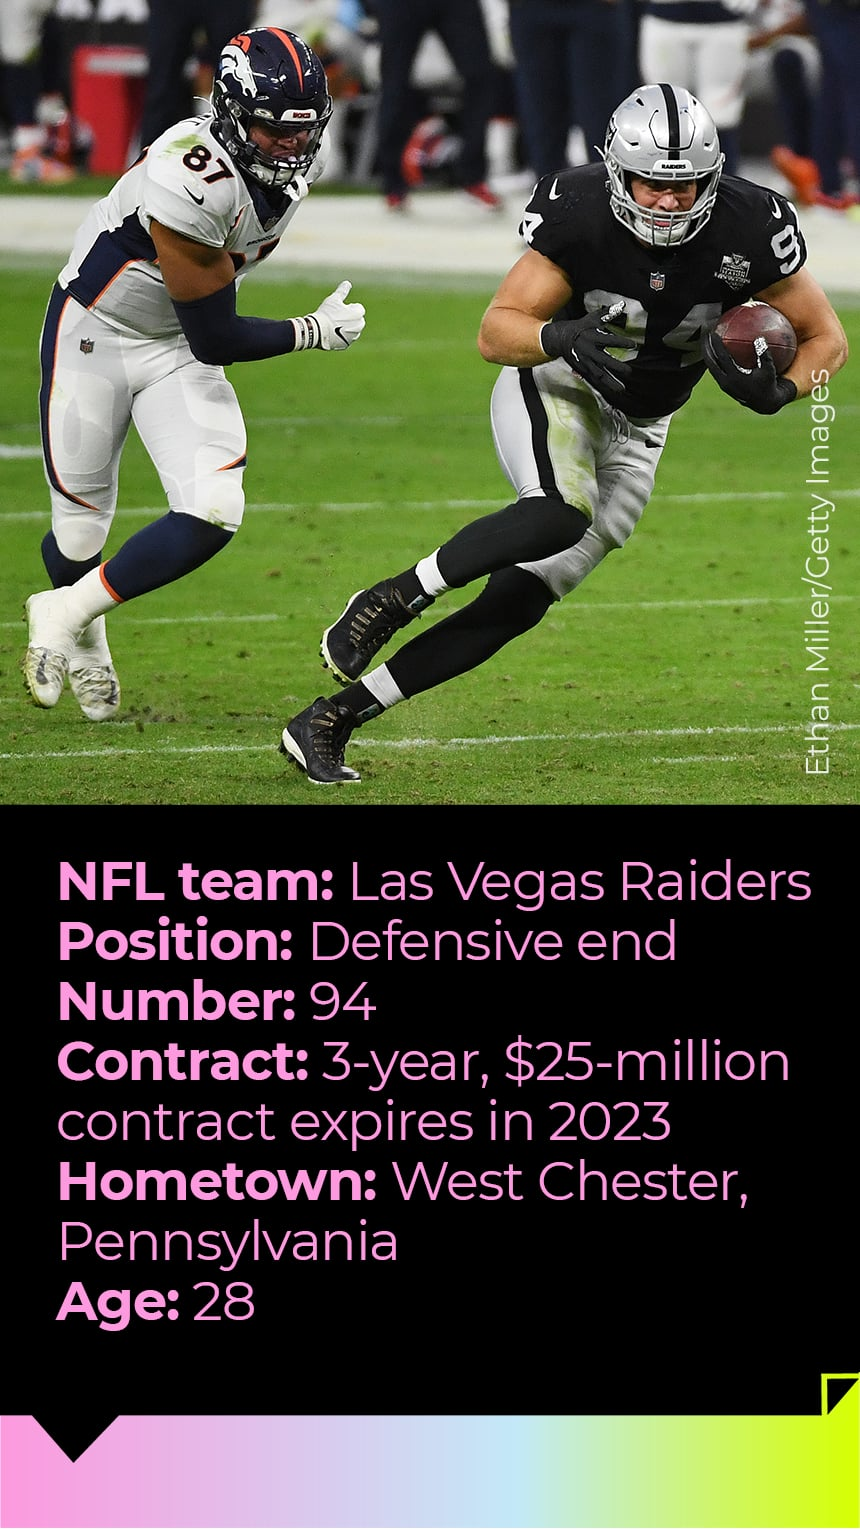 NFL team: Las Vegas Raiders Position: Defensive end Number: 94 Contract: 3-year, $25-million contract expires in 2023 Hometown: West Chester, Pennsylvania Age: 28